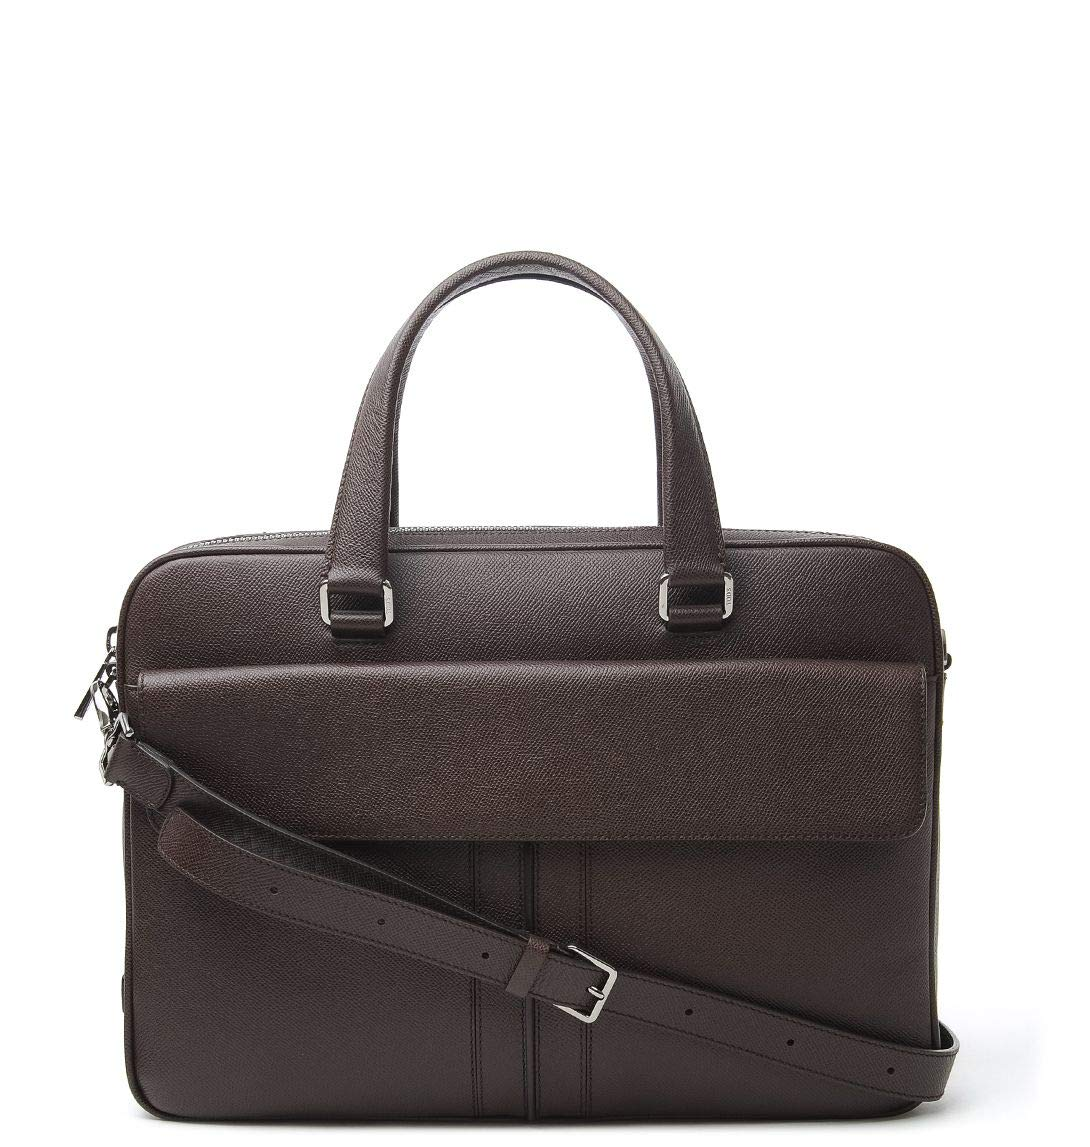 Tods Mens Xbmmcgp9300dous804 Brown Leather Briefcase